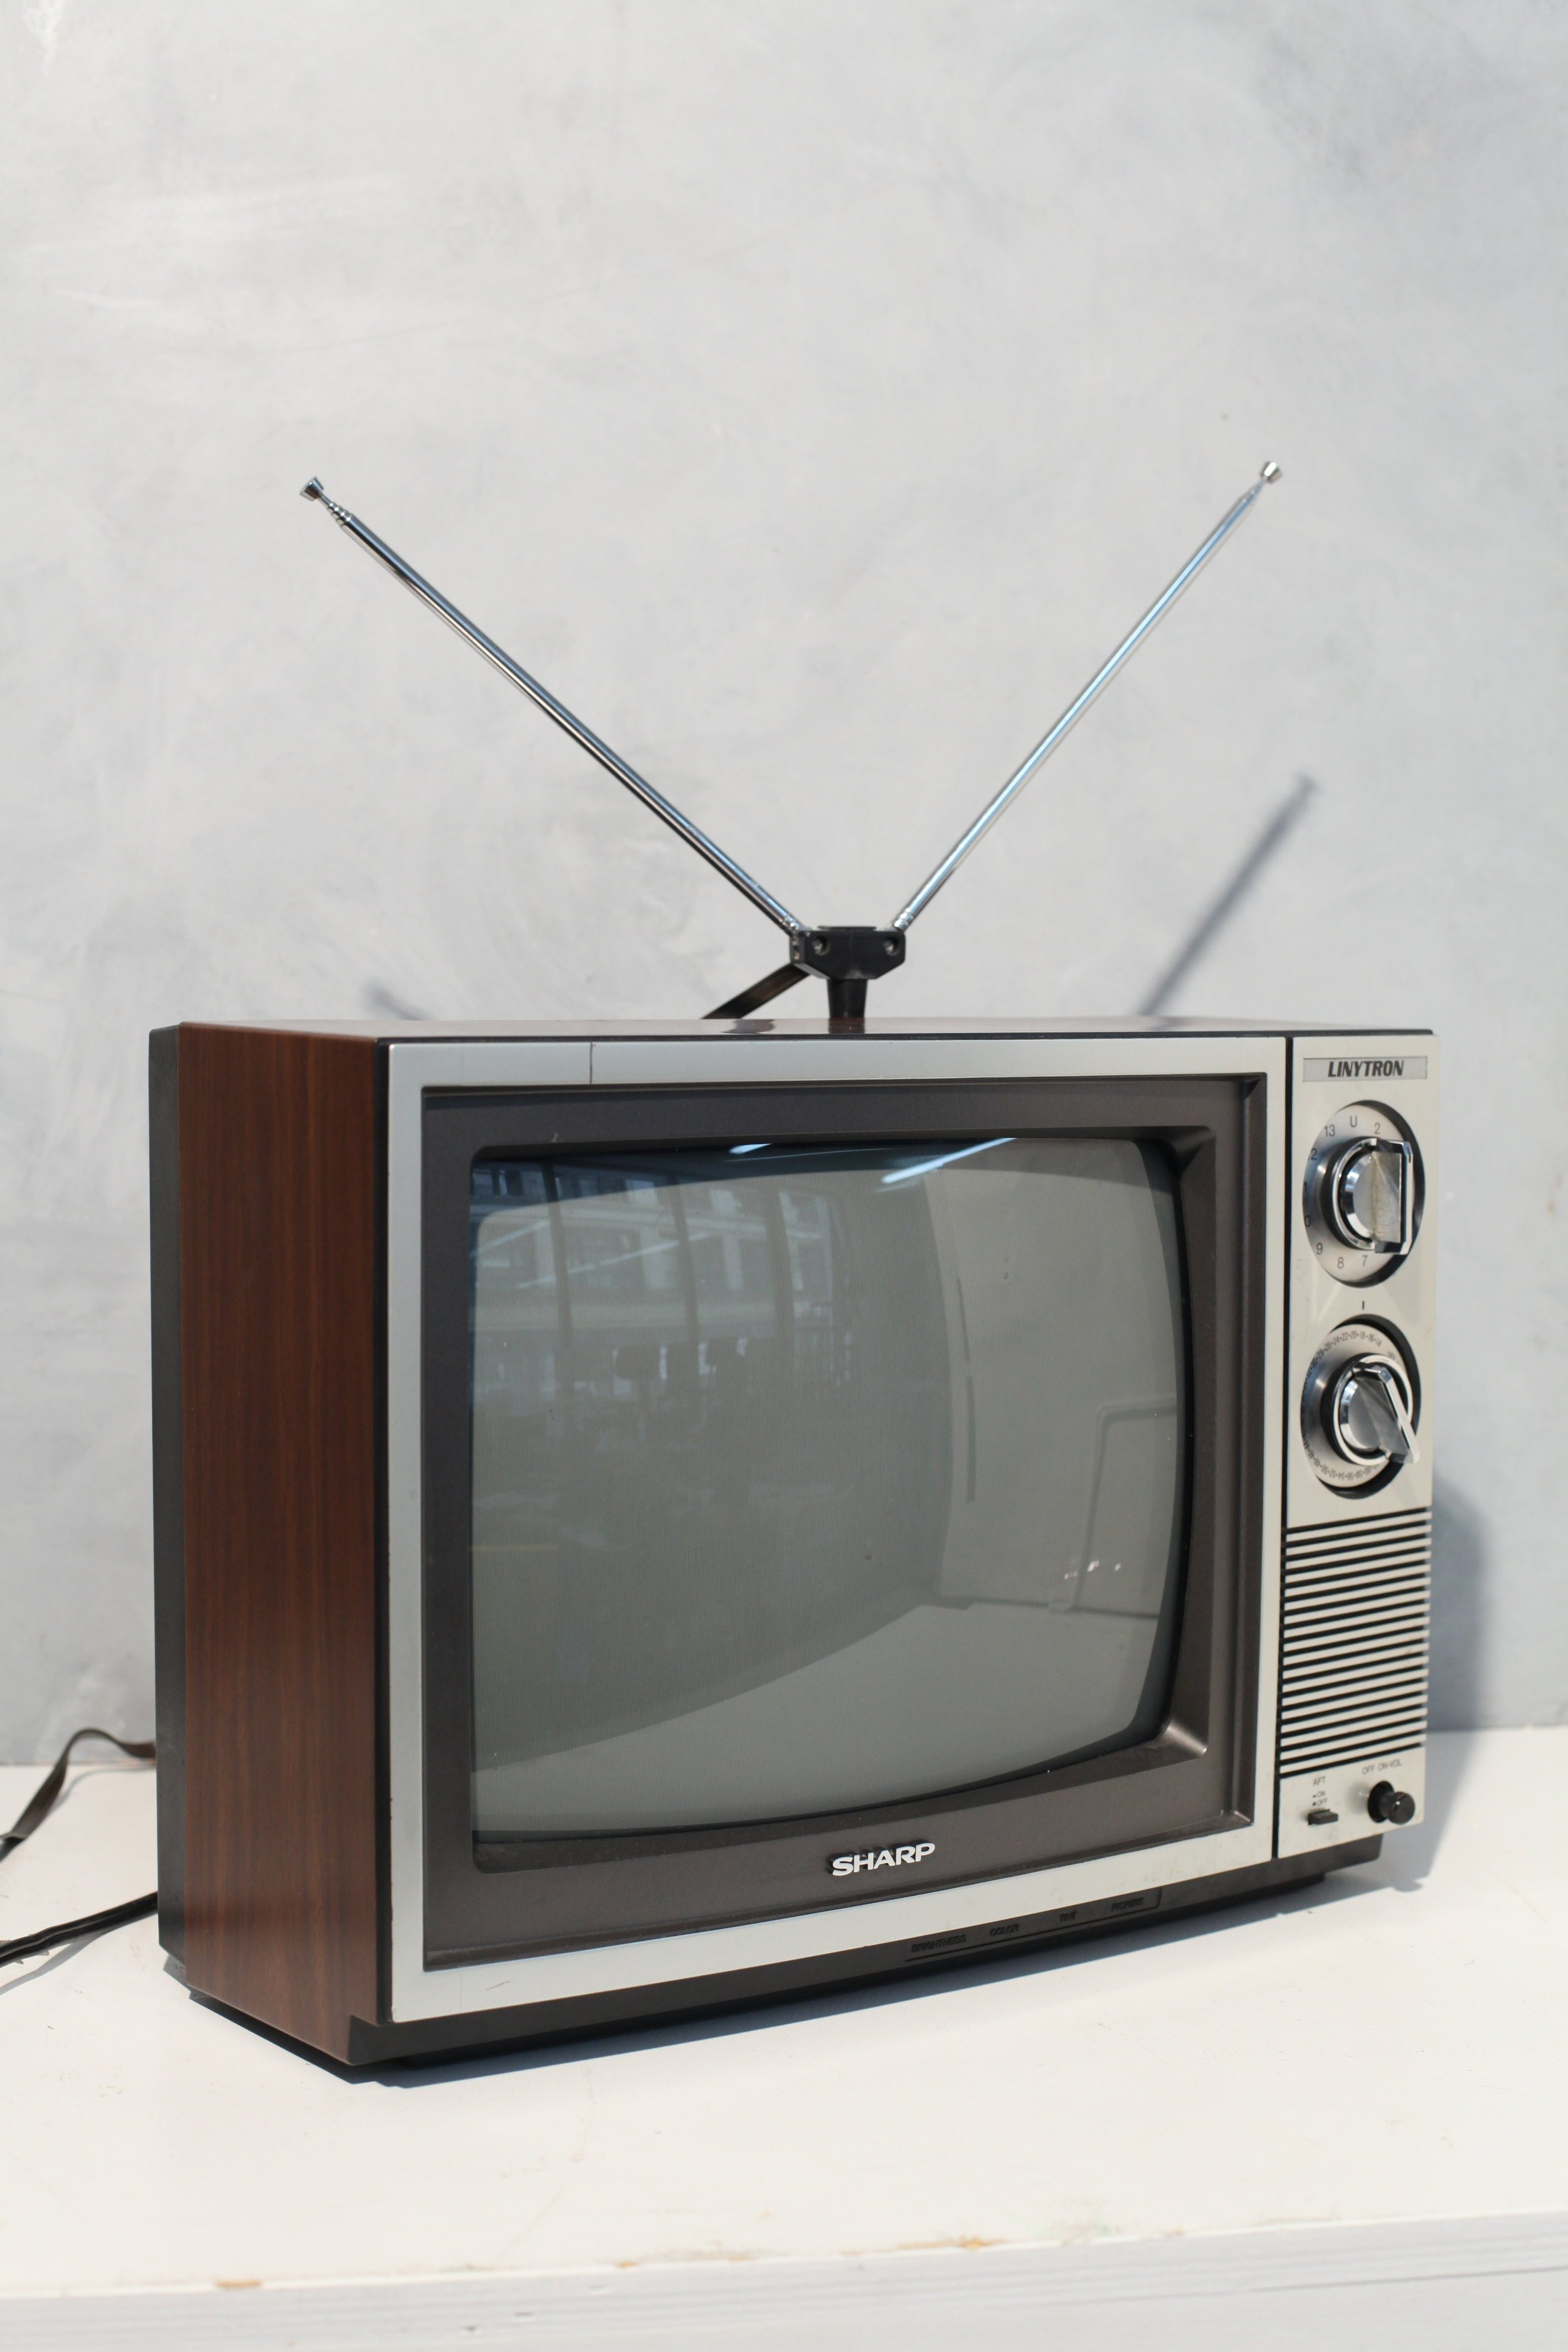 I AM CUTE. PRE-REMOTE CONTROL TELEVISION. $150, CAN BE RENTED WITH OR WITHOUT BUNNY EARS!